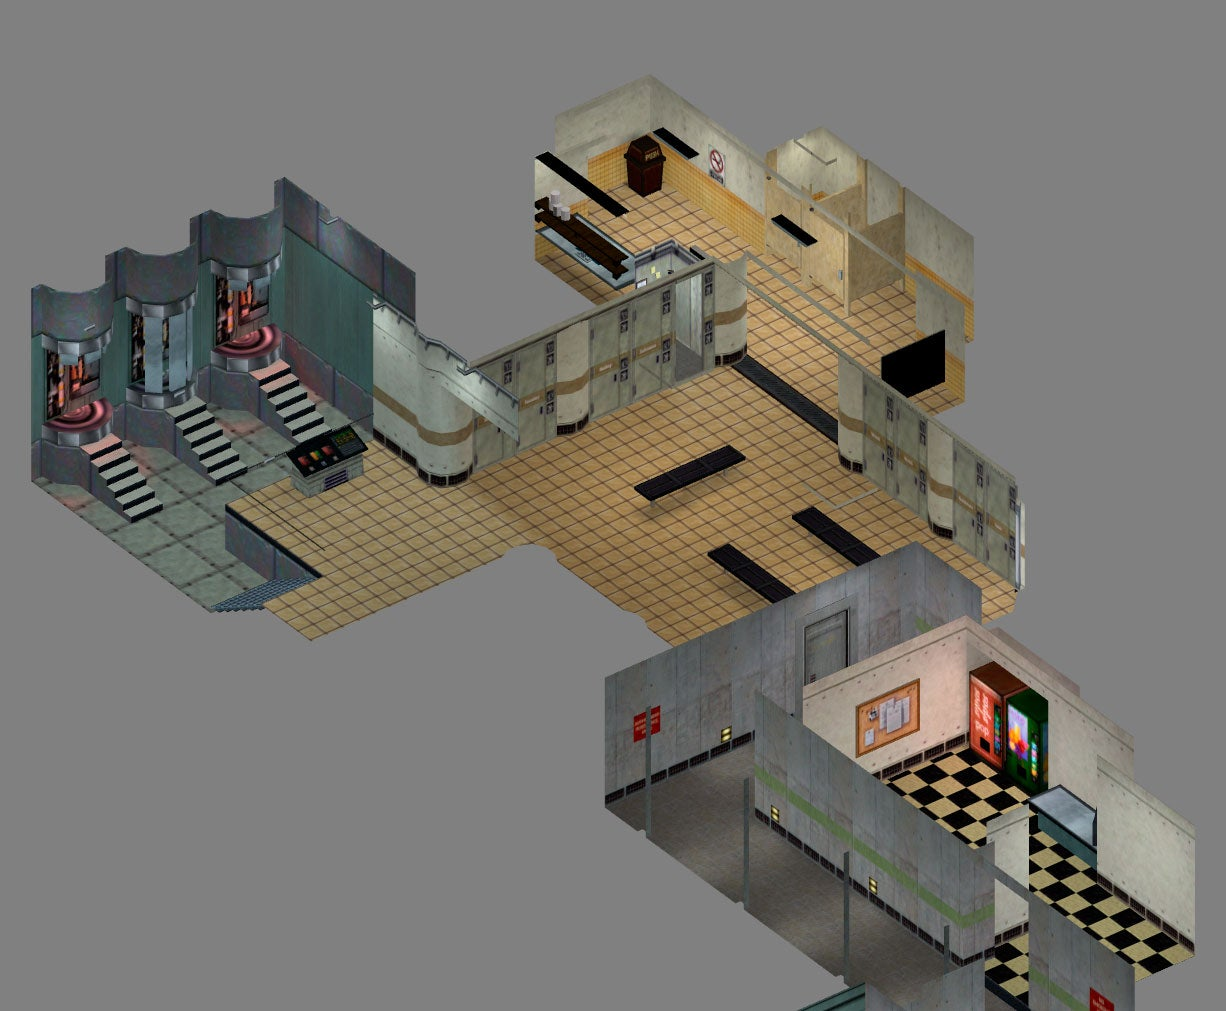 Half-Life Reimagined As An Isometric Game